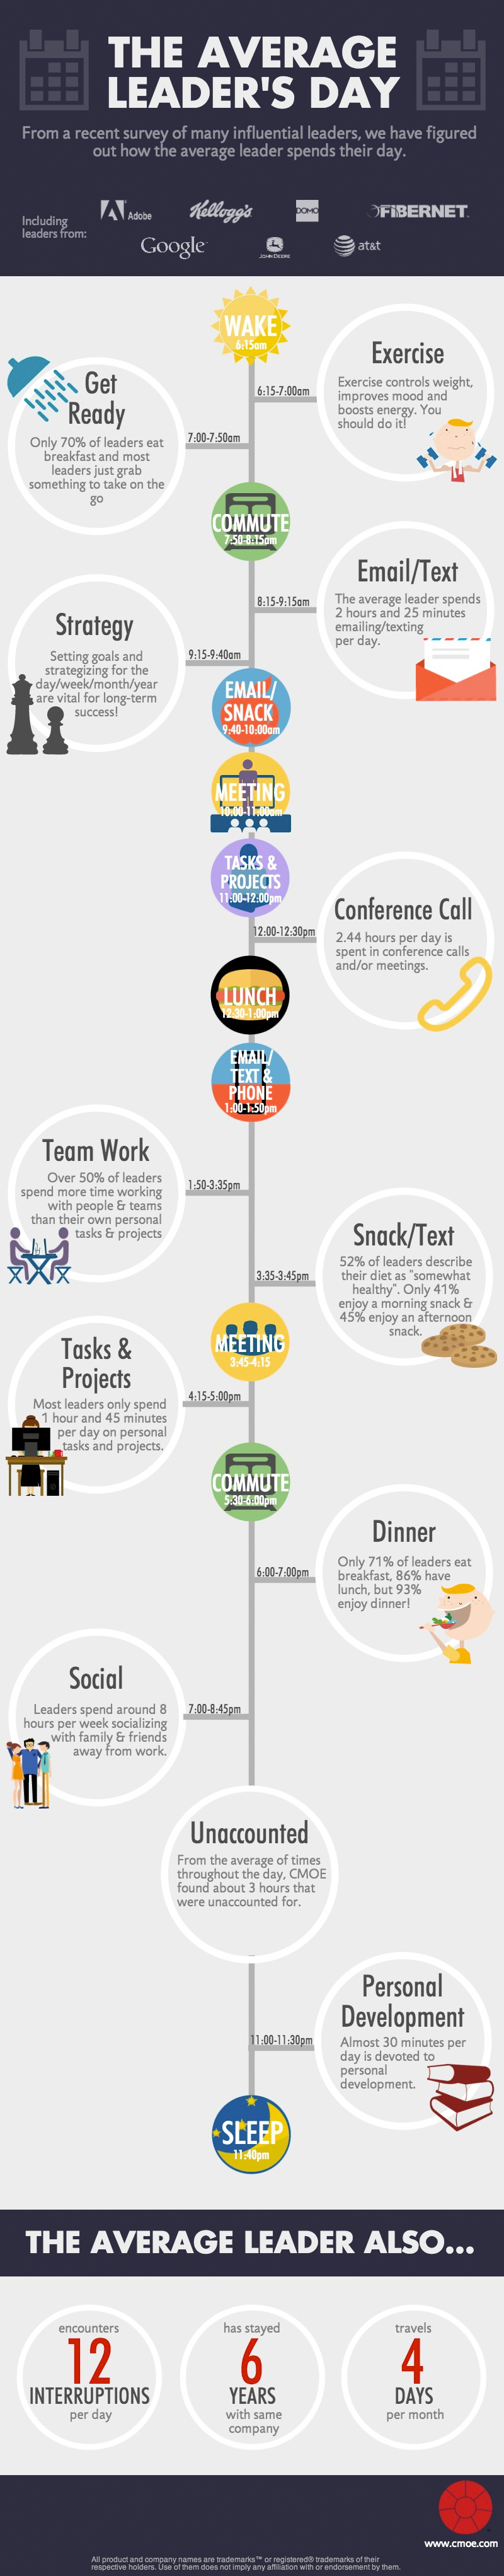 How fortune 500 leaders spend their day infographic